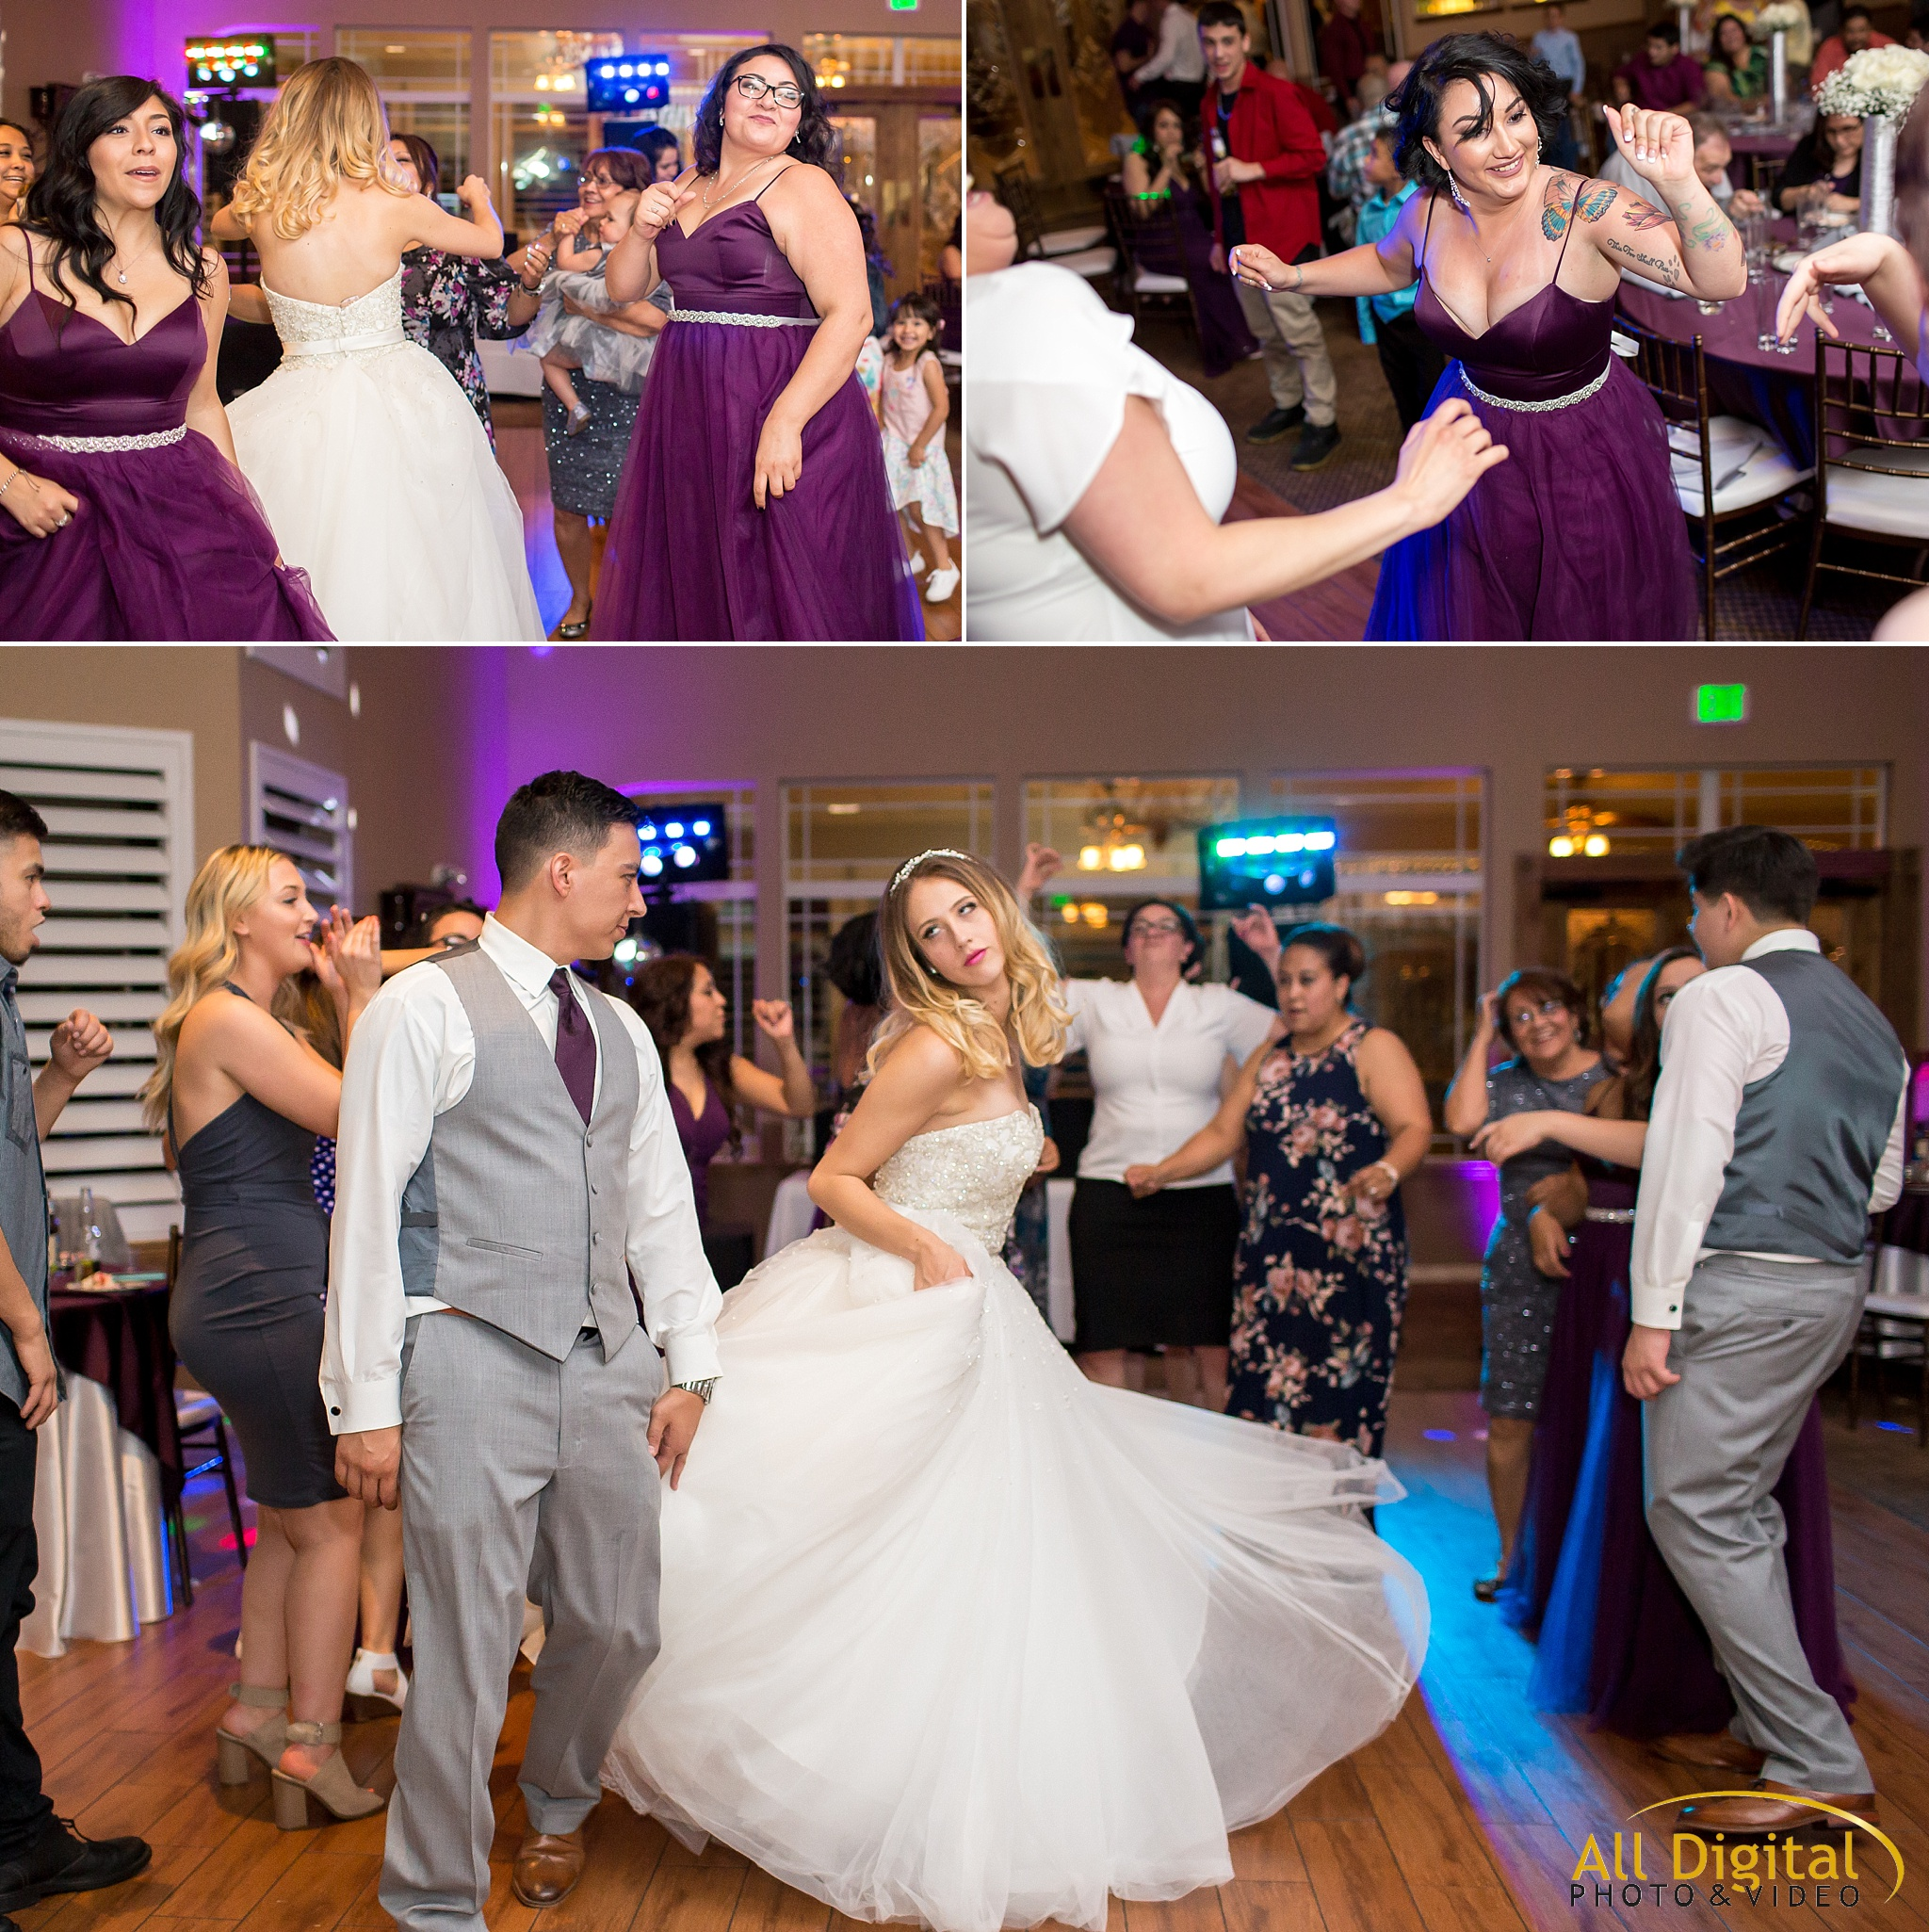 Guests dancing during the reception at Stonebrook Manor.